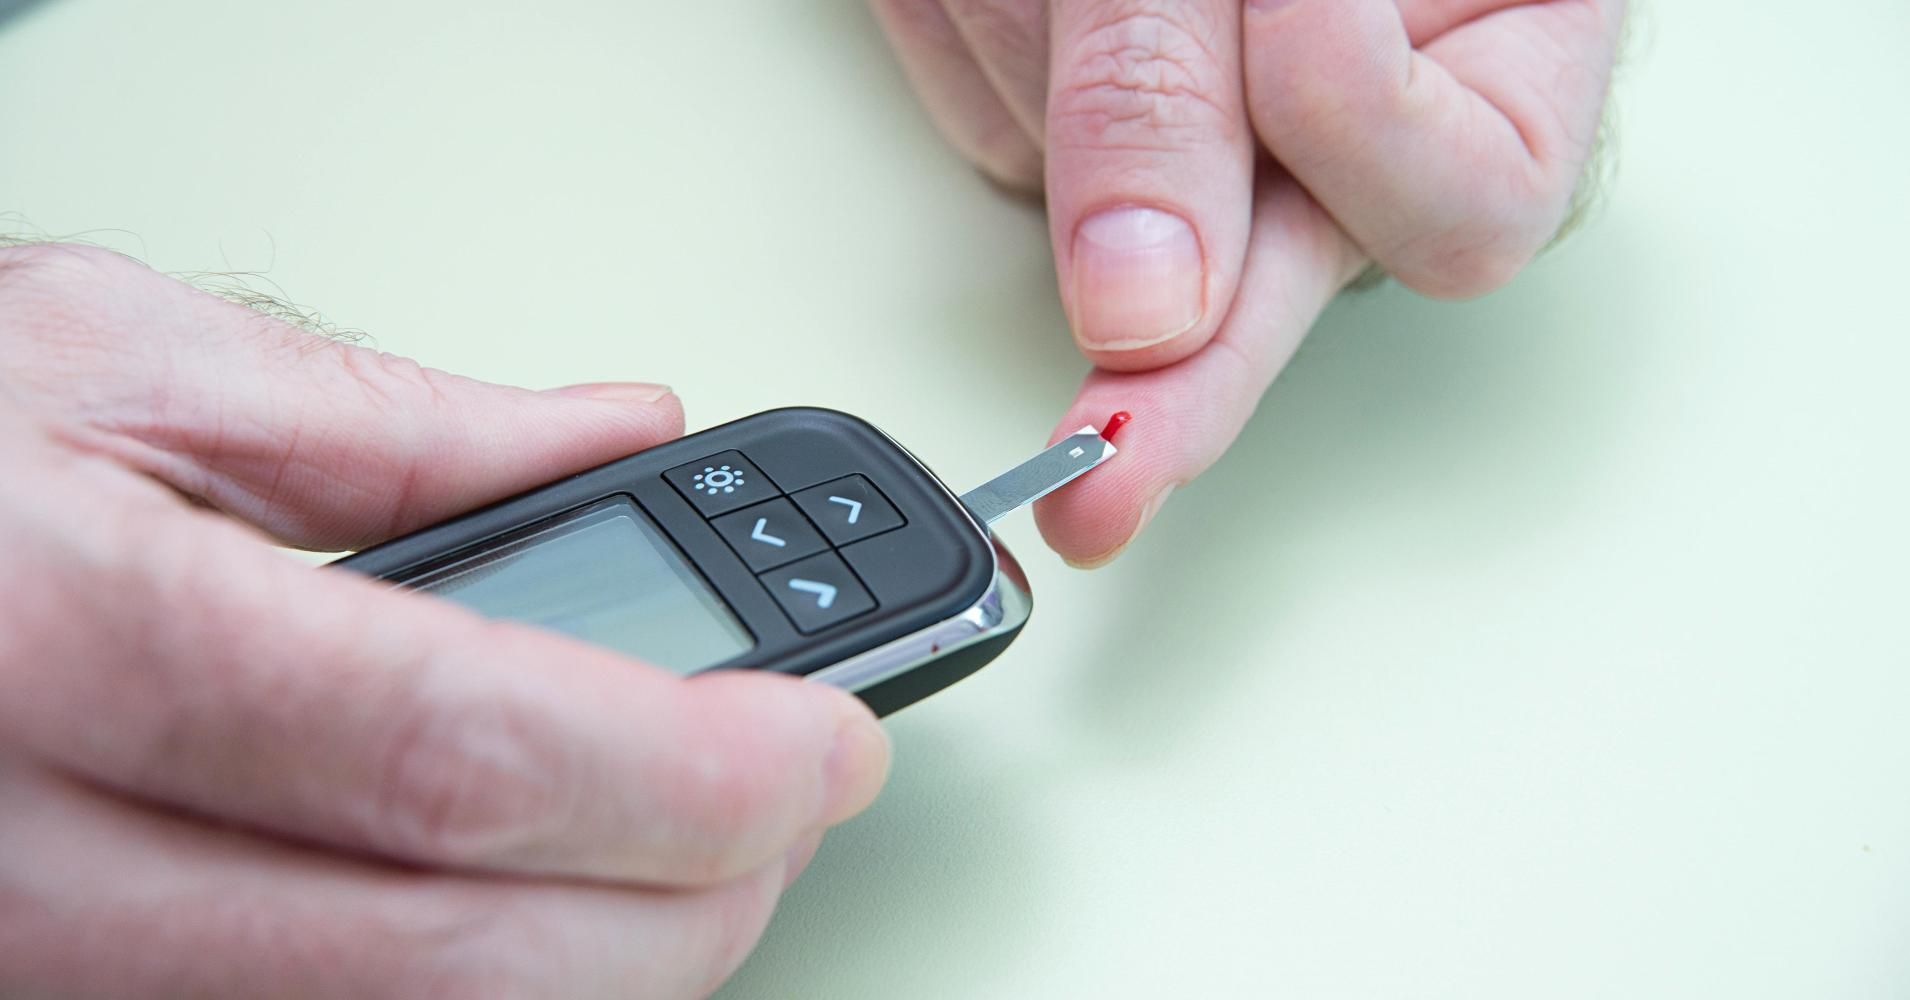 Americans spending more money treating diabetes than any